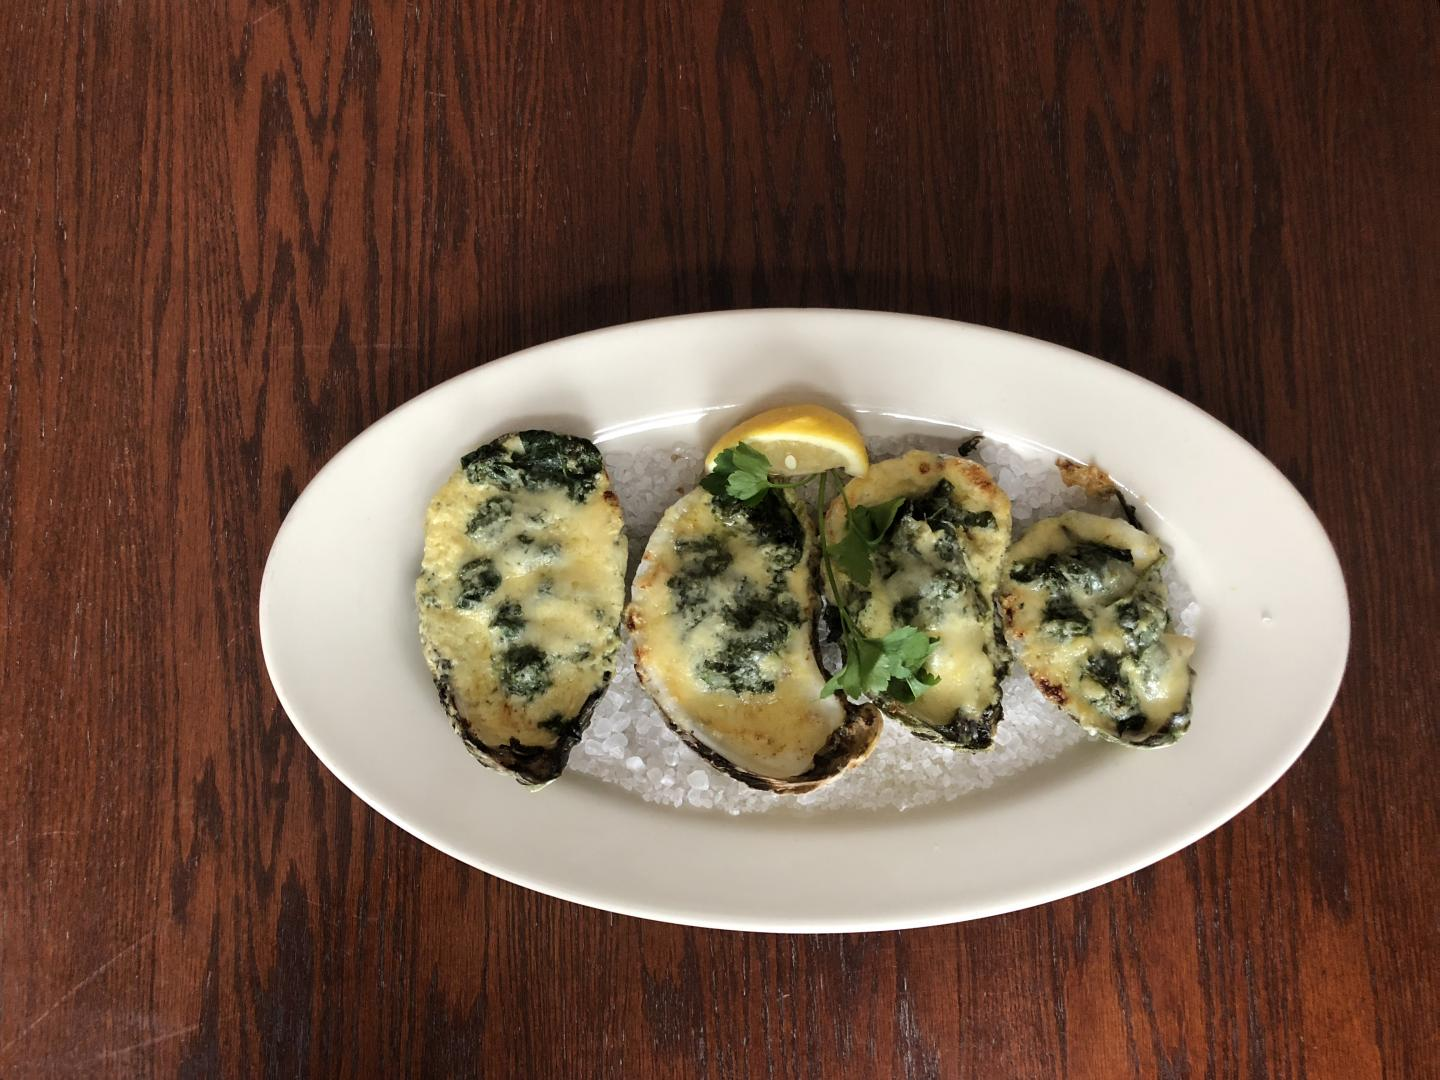 Four oysters rockefeller on a wood table at Shaw's Crab House